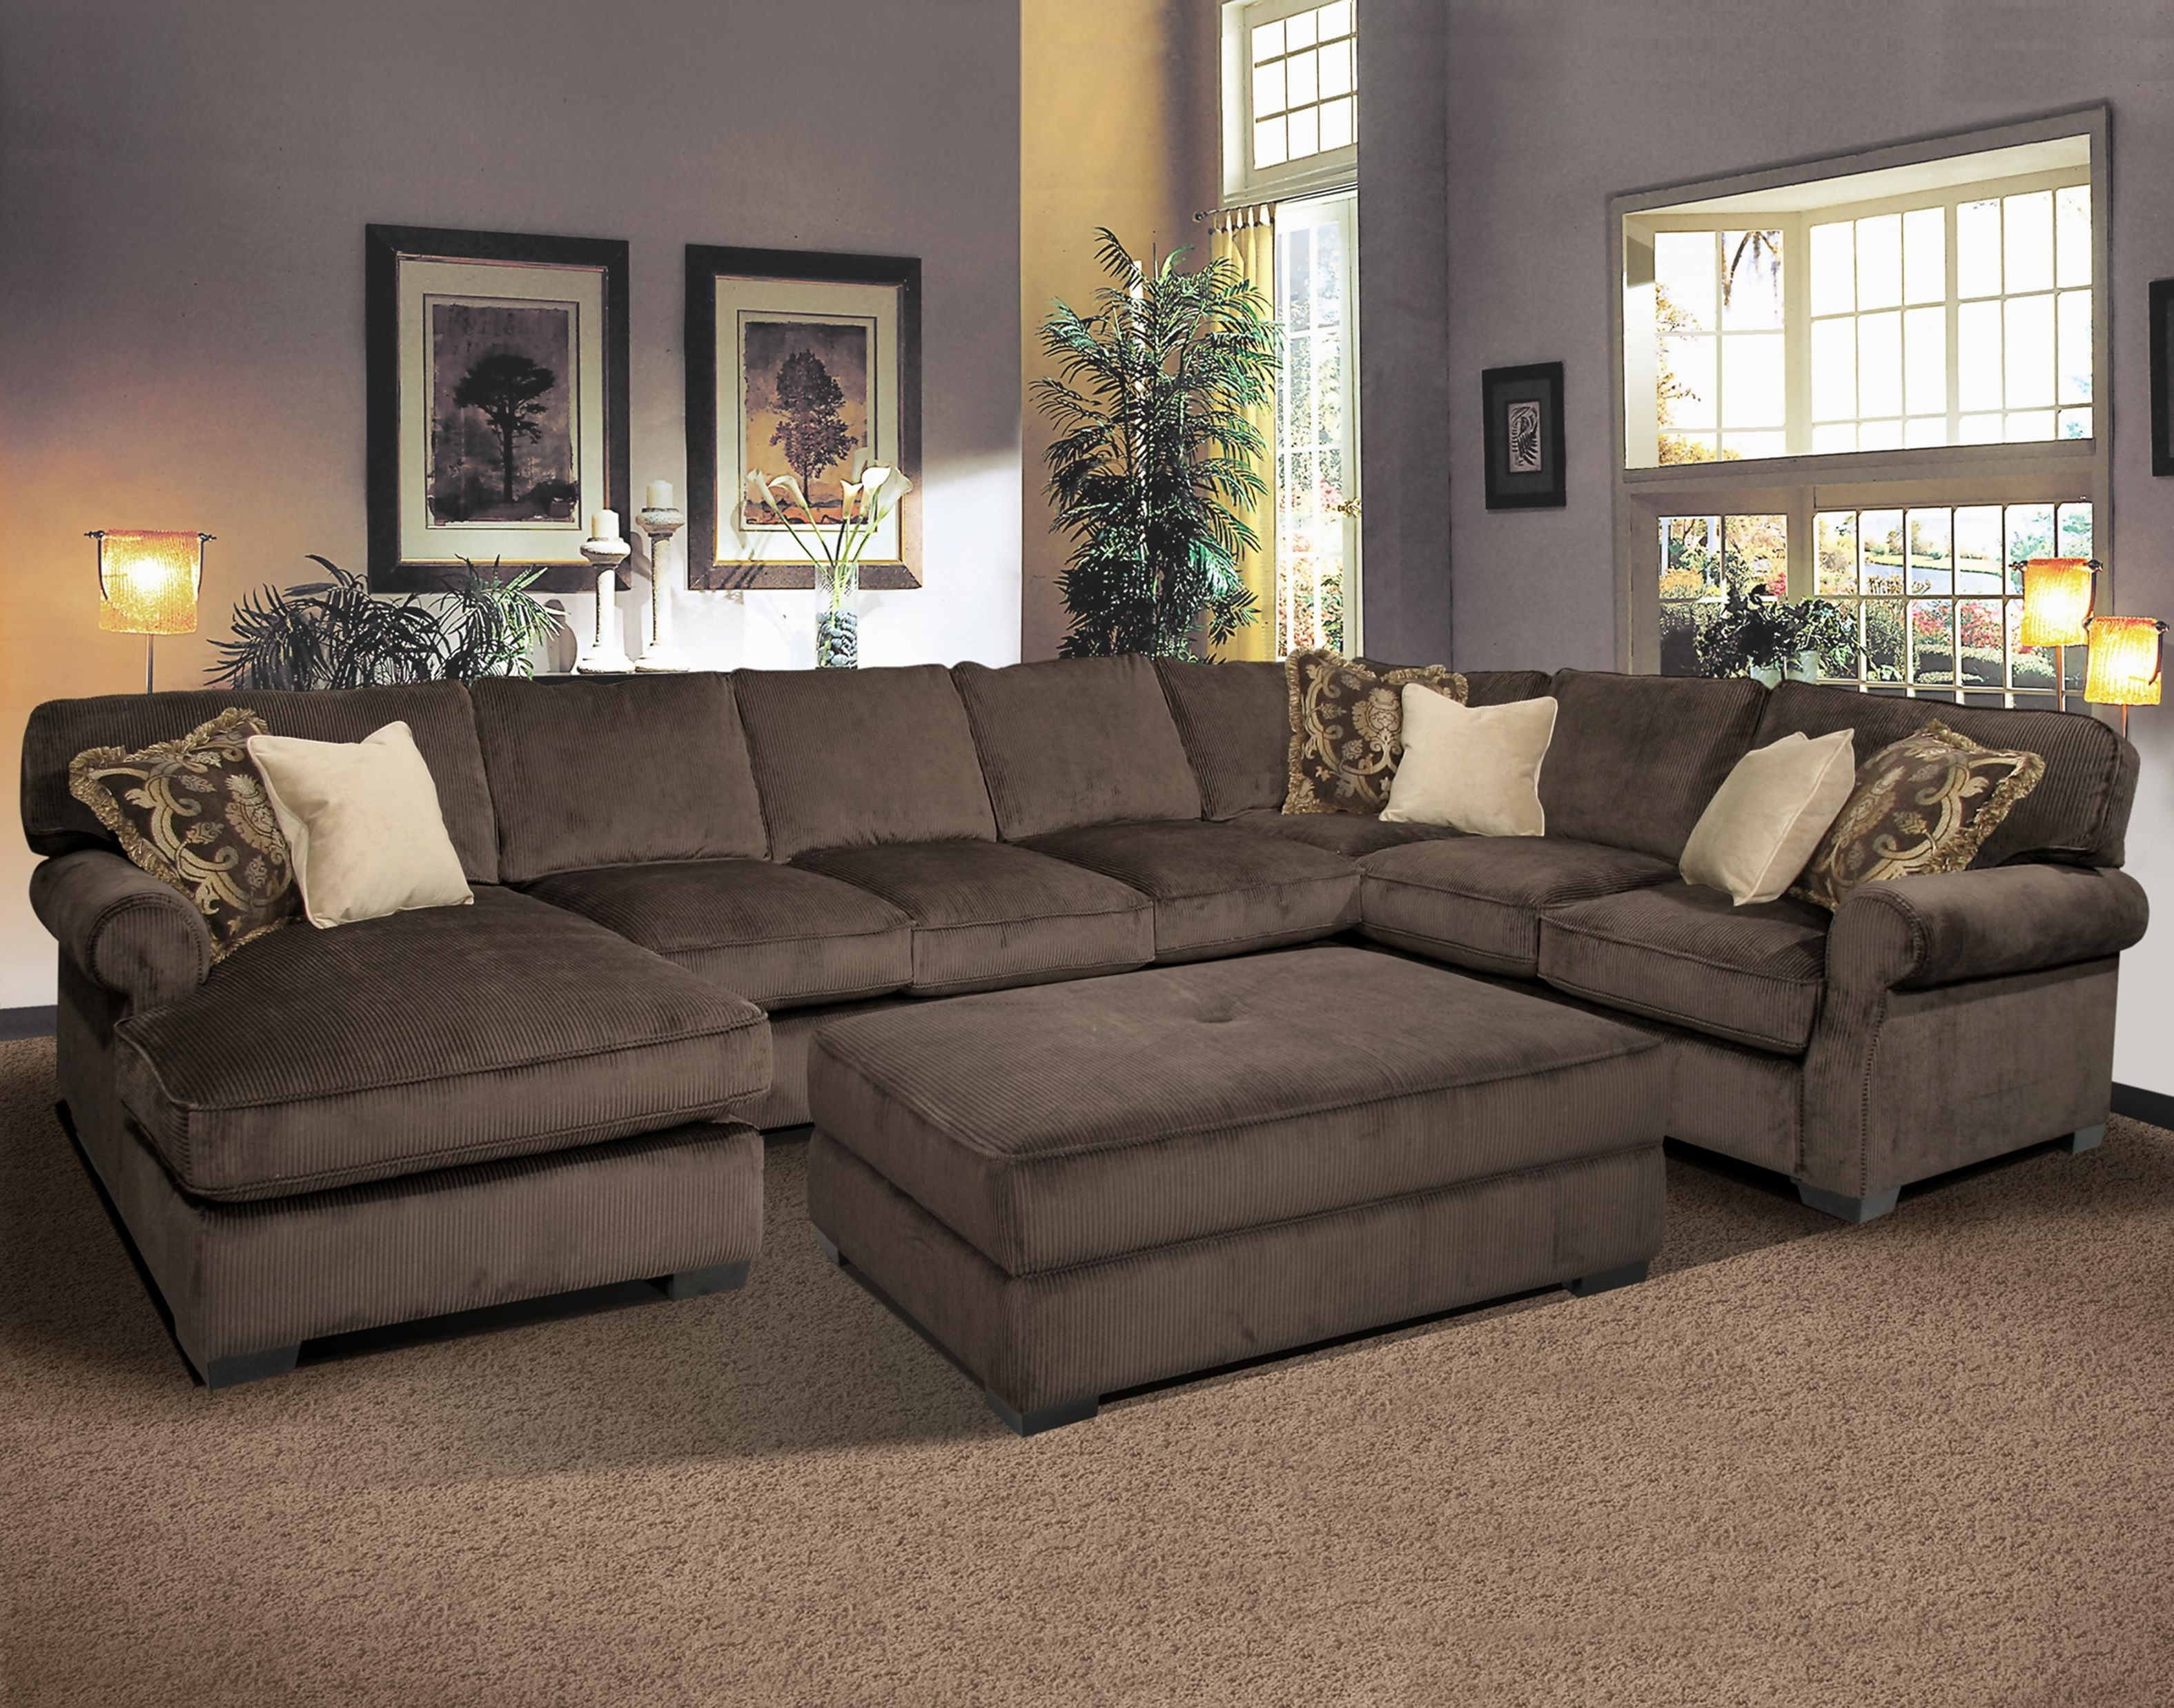 Well Known Big And Comfy Grand Island Large, 7 Seat Sectional Sofa With Right With Regard To Long Sectional Sofas With Chaise (View 5 of 20)